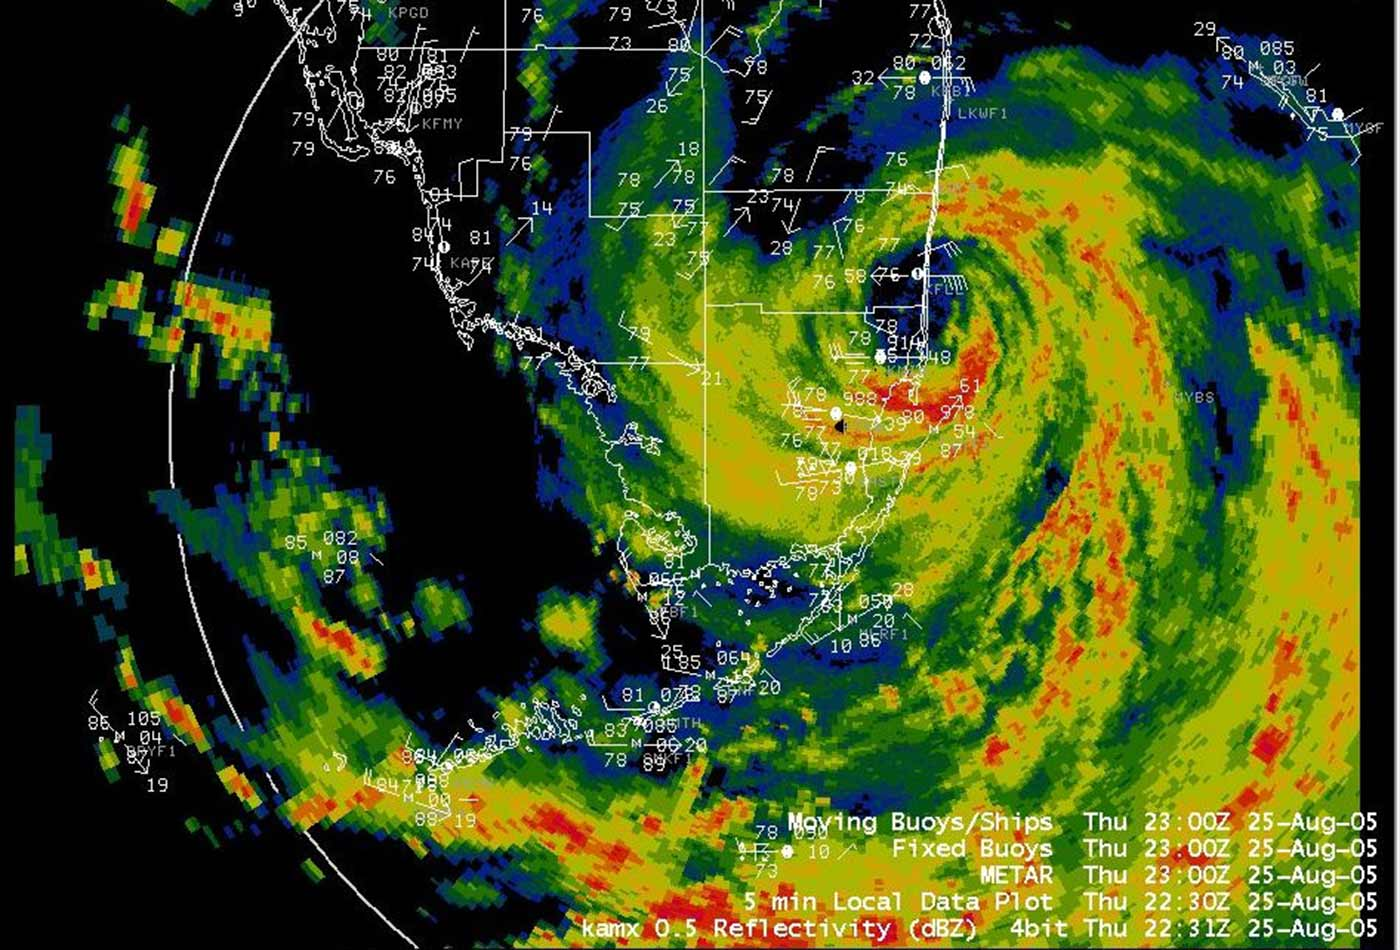 Radar reflectivity image while Katrina was crossing the coast, from August 25 at 6:31 PM EDT.